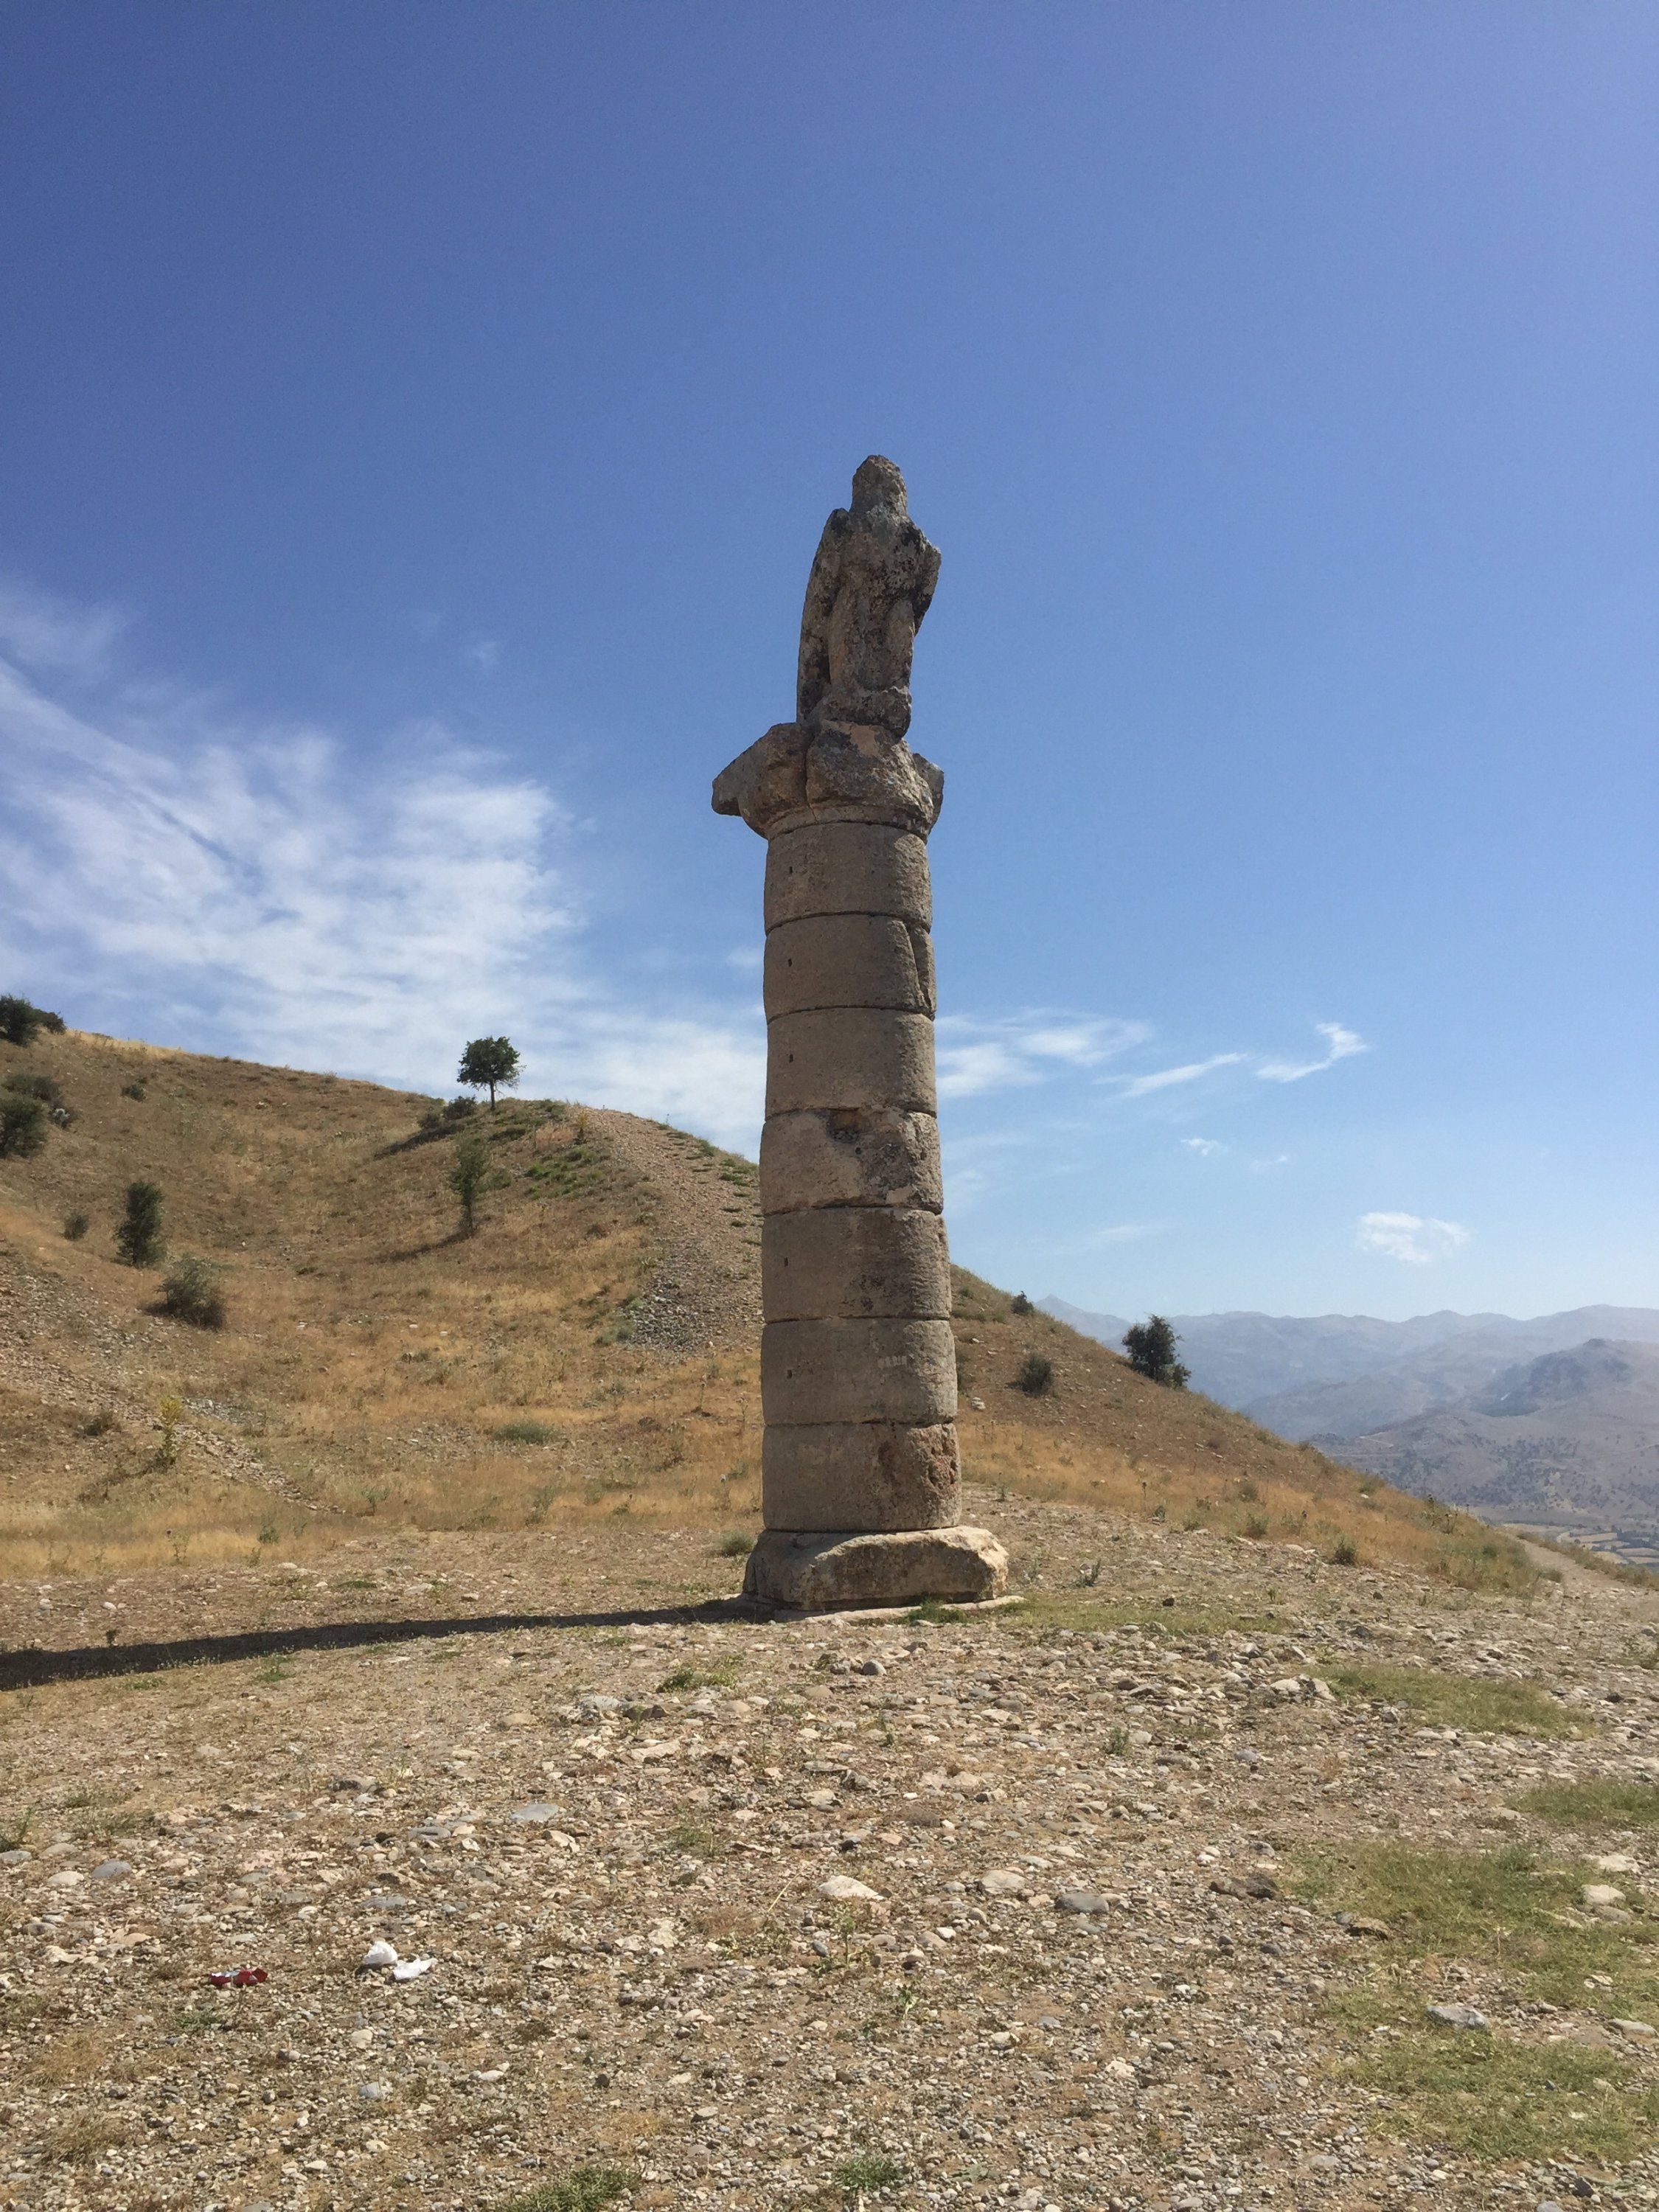 """The Karakuş Tumulus, the burial place of Antiochus' wife Isias who is depicted as a supernatural character in the Netflix series, """"Atiye"""" (The Gift). (Paris Achen / Daily Sabah)"""